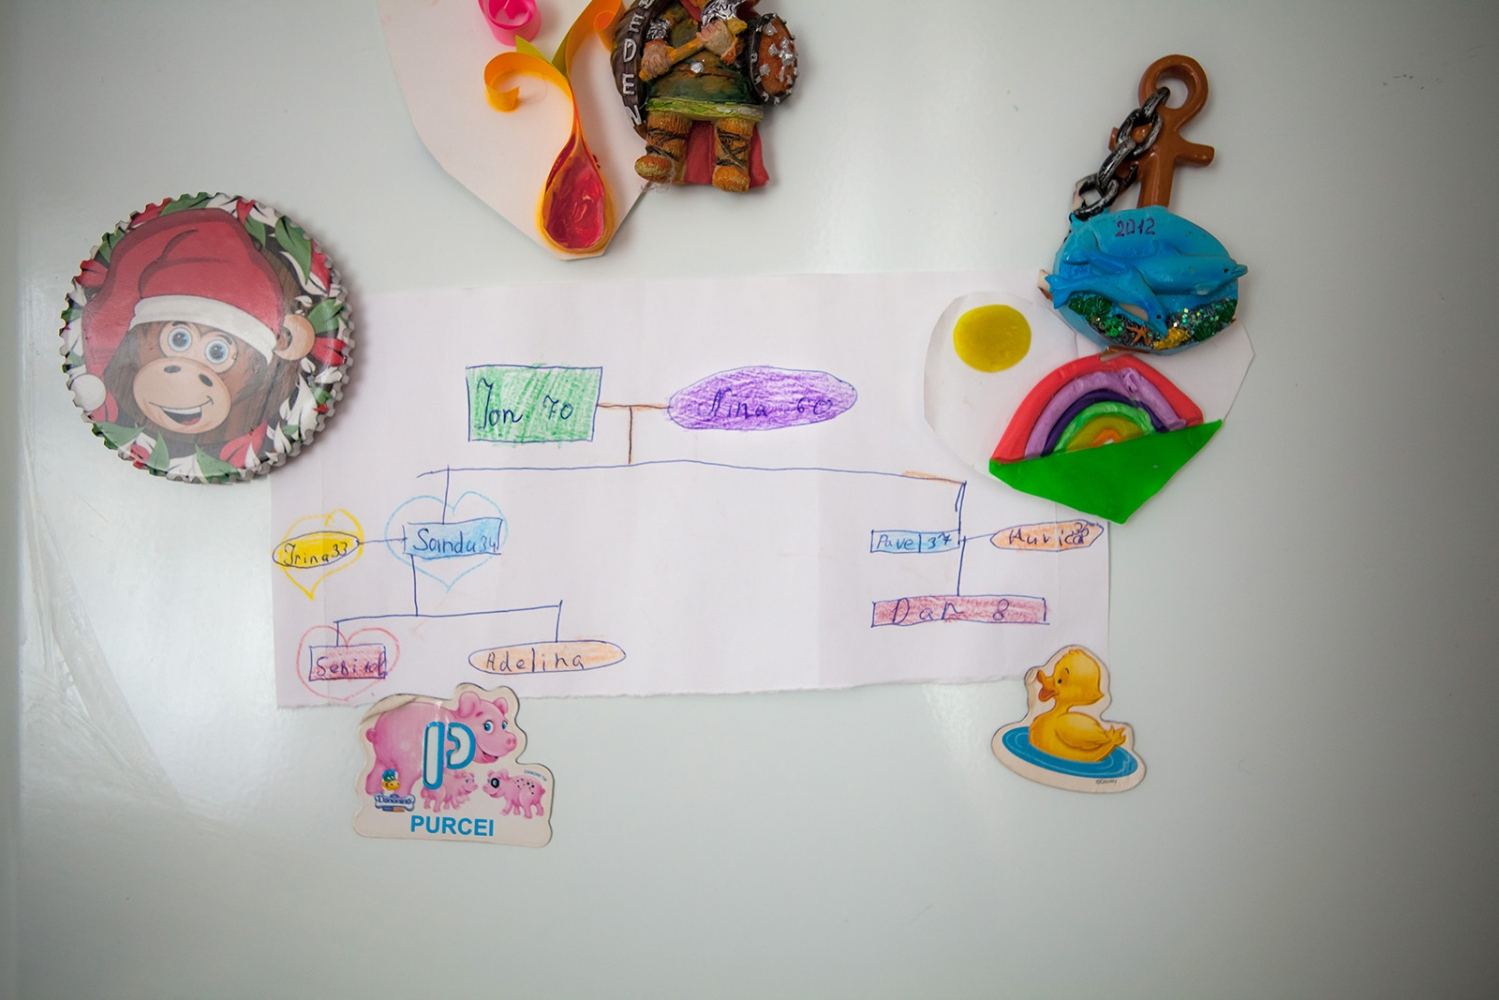 Ion and Nina have hung a family tree made by their grandchildren on their refrigerator, which is held up, in part, by handmade gifts. Many deportees talk about how, despite the hardship they faced in the past, they are happy with their lives now, in part because they are so close to their families. Ion and Nina's home is filled with their children, grandchildren, brothers, nieces and nephews everyday.